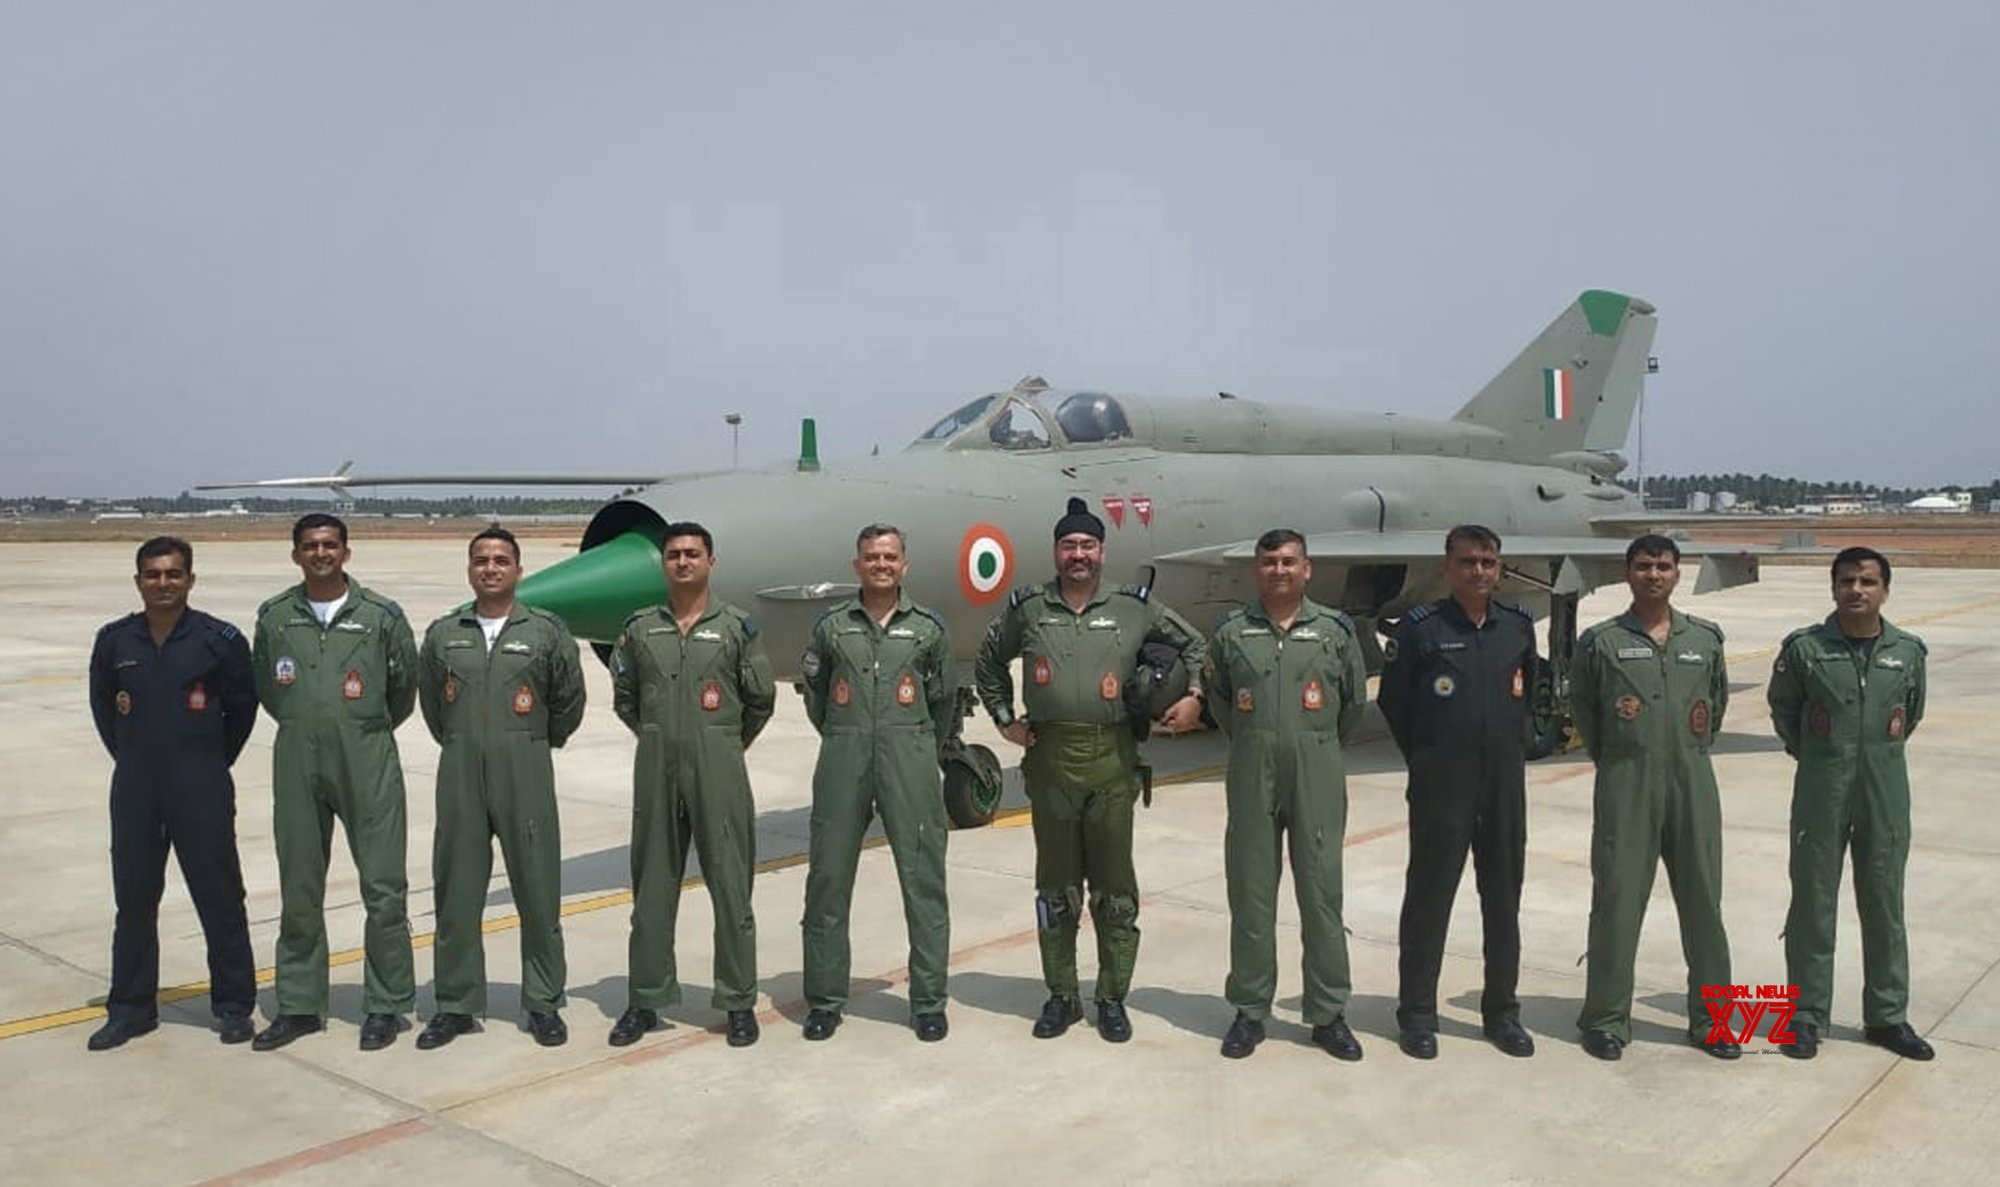 Sulur (Tamil Nadu): Marshal B.S. Dhanoa visits Sulur Air Force Station #Gallery